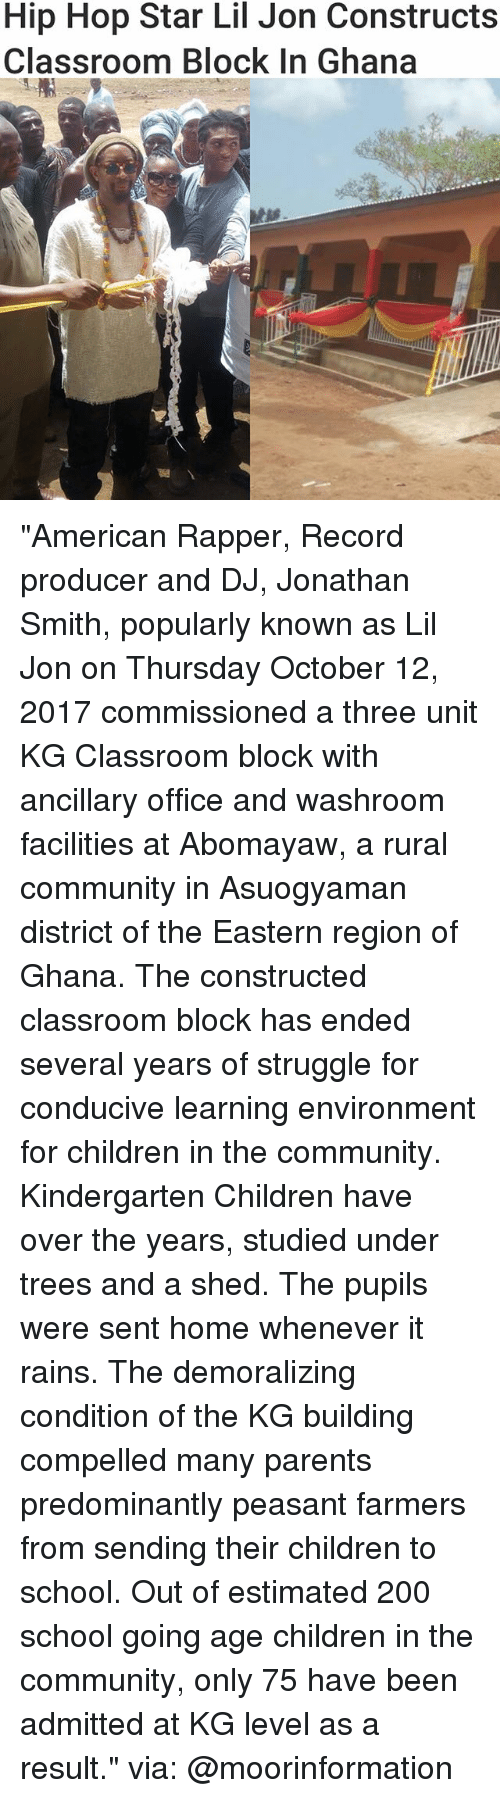 "Lil Jon: Hip Hop Star Lil Jon Constructs  Classroom BloCK In Ghana ""American Rapper, Record producer and DJ, Jonathan Smith, popularly known as Lil Jon on Thursday October 12, 2017 commissioned a three unit KG Classroom block with ancillary office and washroom facilities at Abomayaw, a rural community in Asuogyaman district of the Eastern region of Ghana. The constructed classroom block has ended several years of struggle for conducive learning environment for children in the community. Kindergarten Children have over the years, studied under trees and a shed. The pupils were sent home whenever it rains. The demoralizing condition of the KG building compelled many parents predominantly peasant farmers from sending their children to school. Out of estimated 200 school going age children in the community, only 75 have been admitted at KG level as a result."" via: @moorinformation"